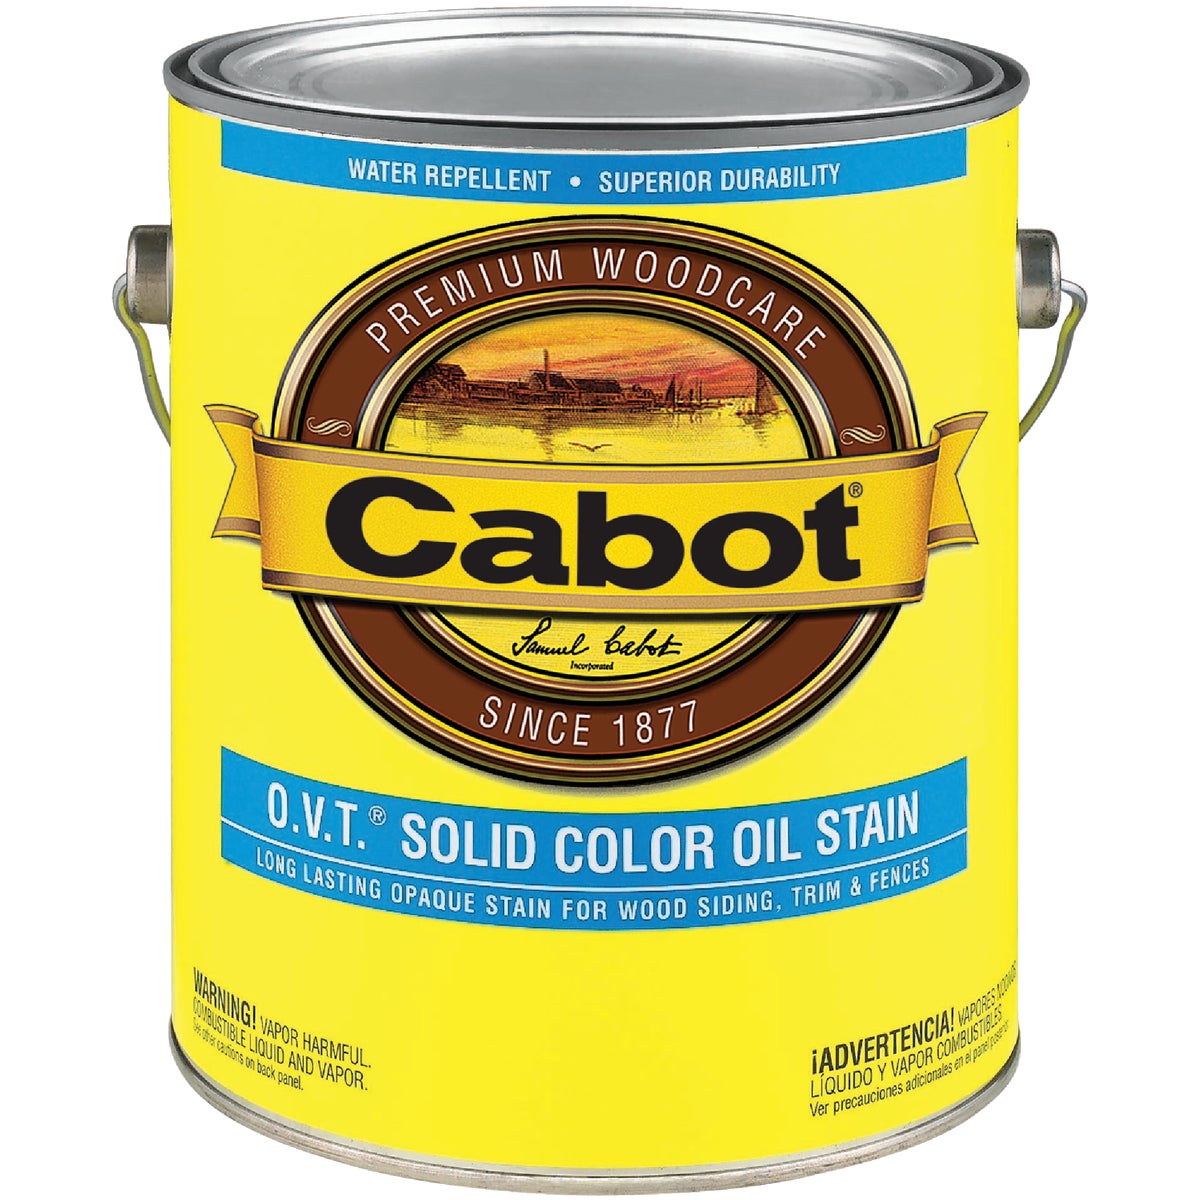 WHT BS OVT SOLID STAIN - 140.0006701.007 by Valspar Corp